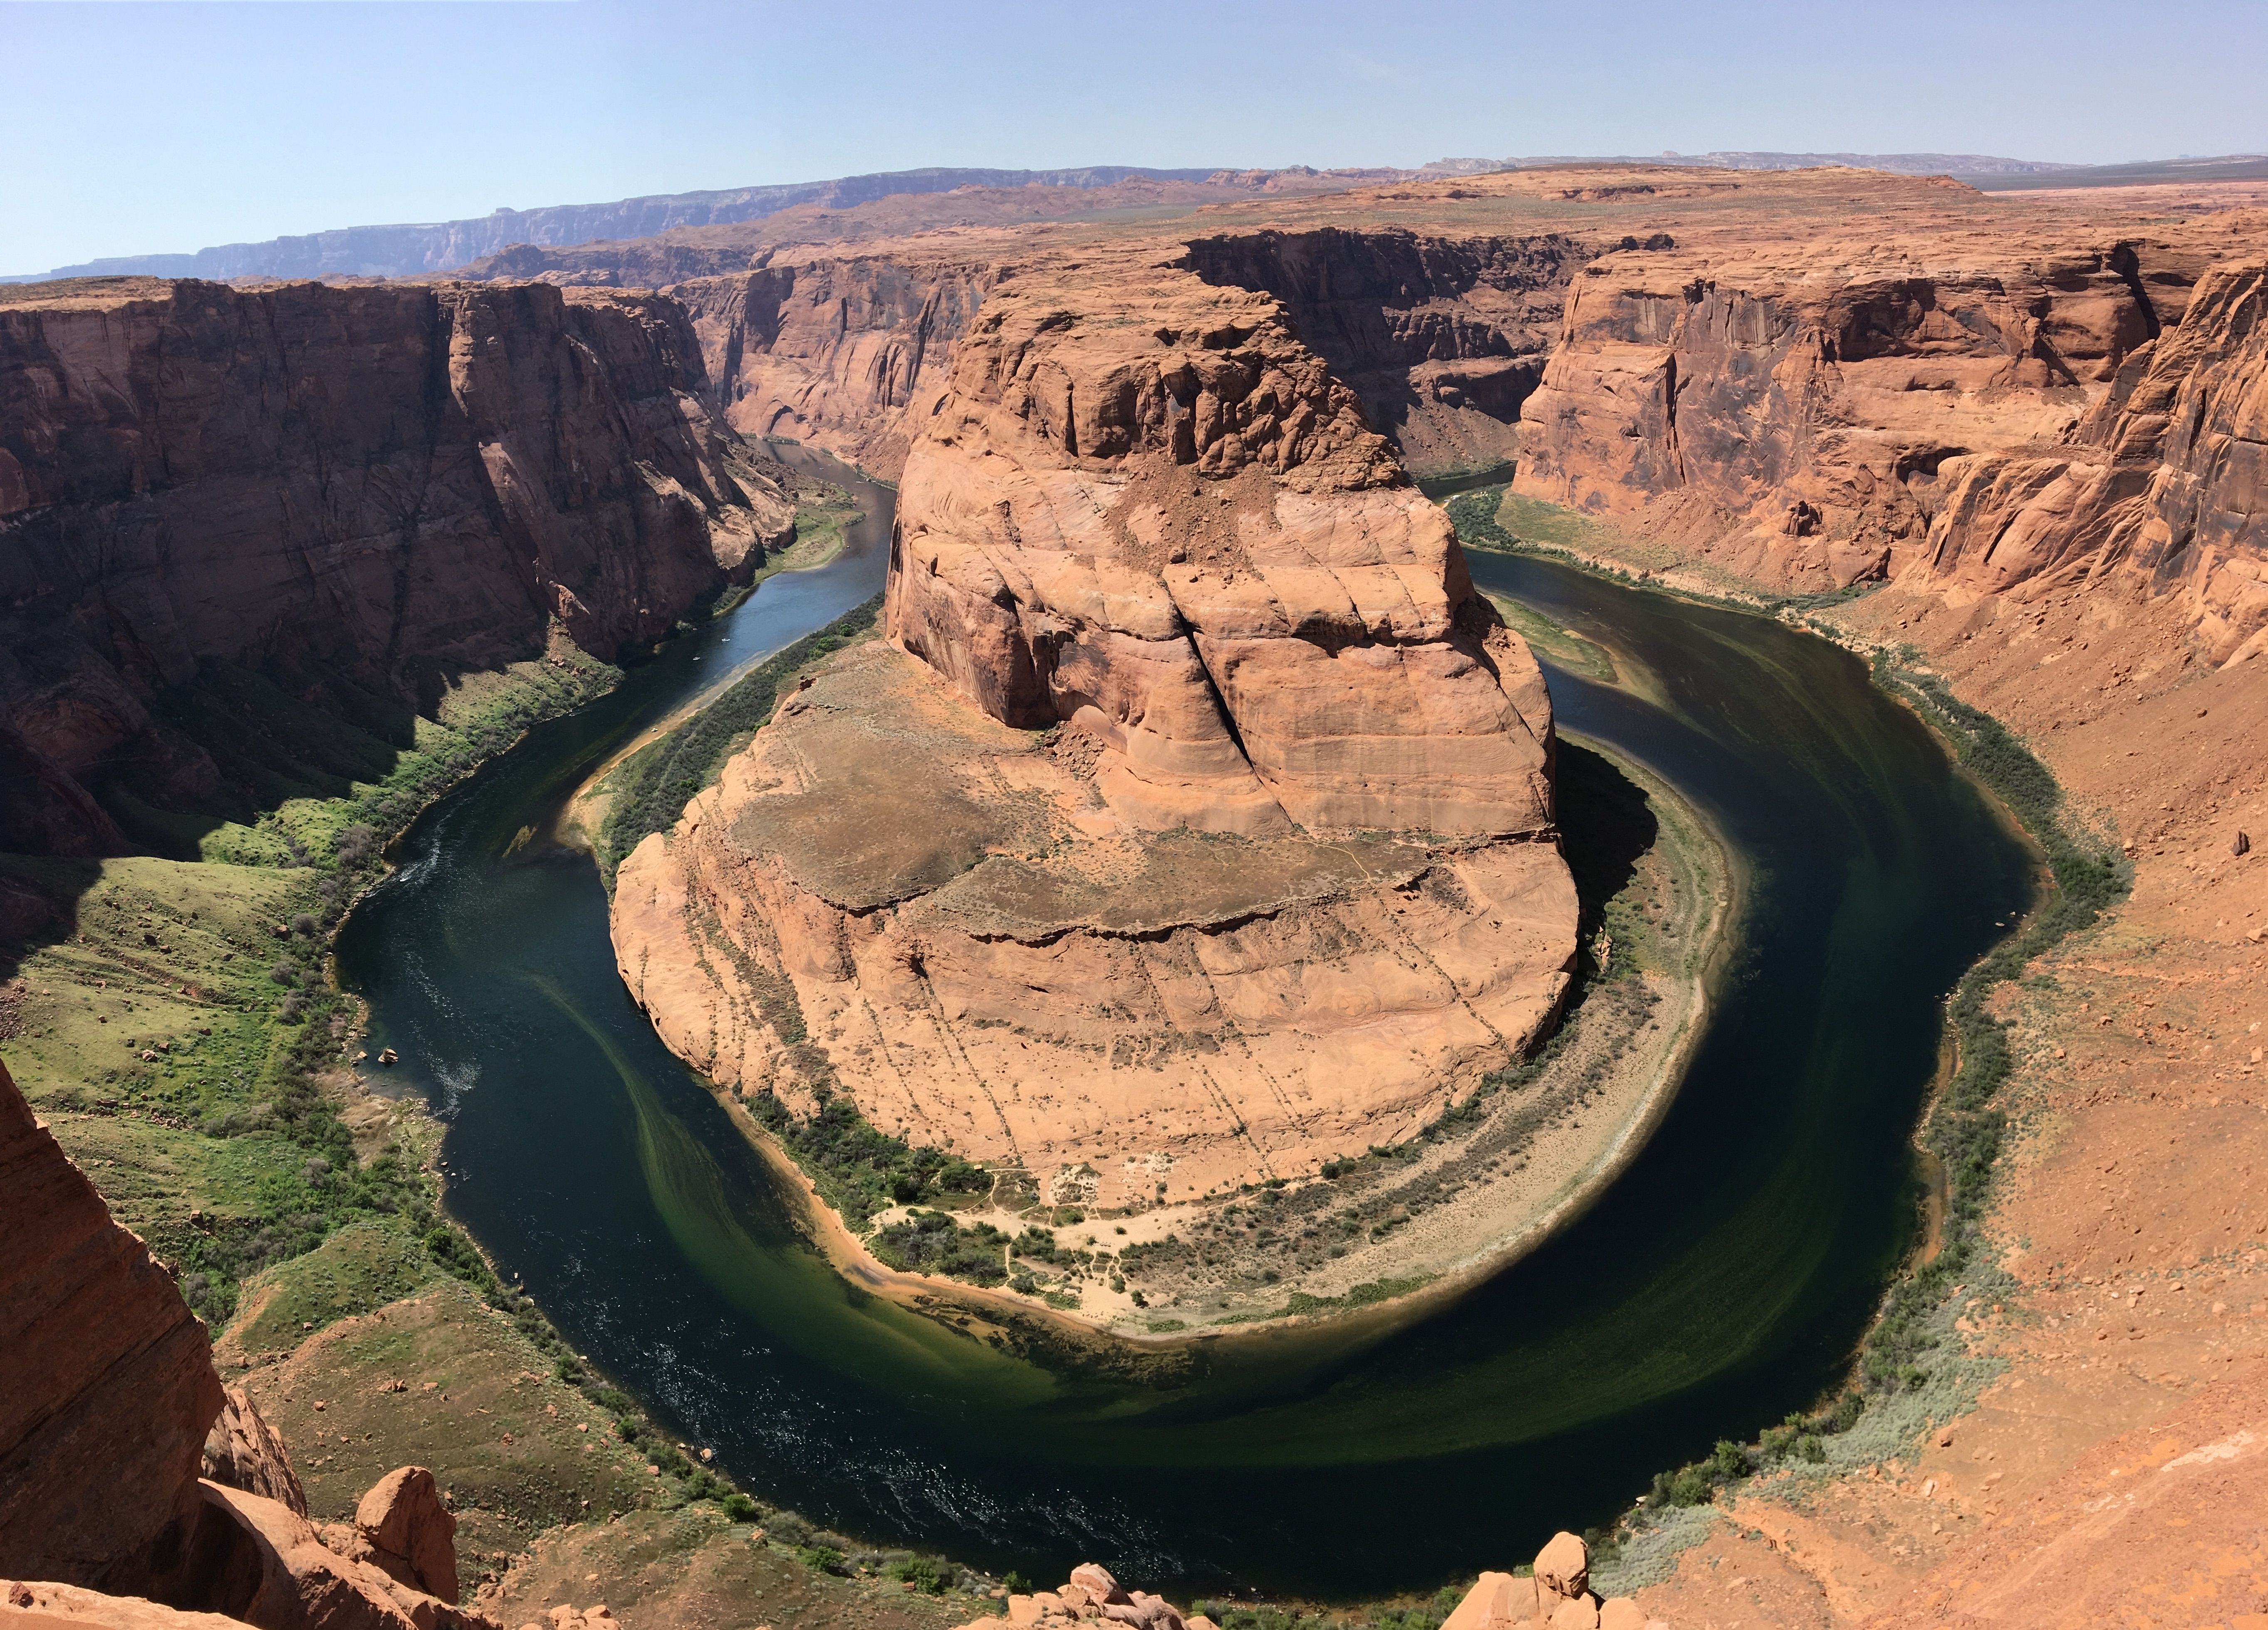 hight resolution of horseshoe bend usa clipart images photo clipart colorado river adventure tours